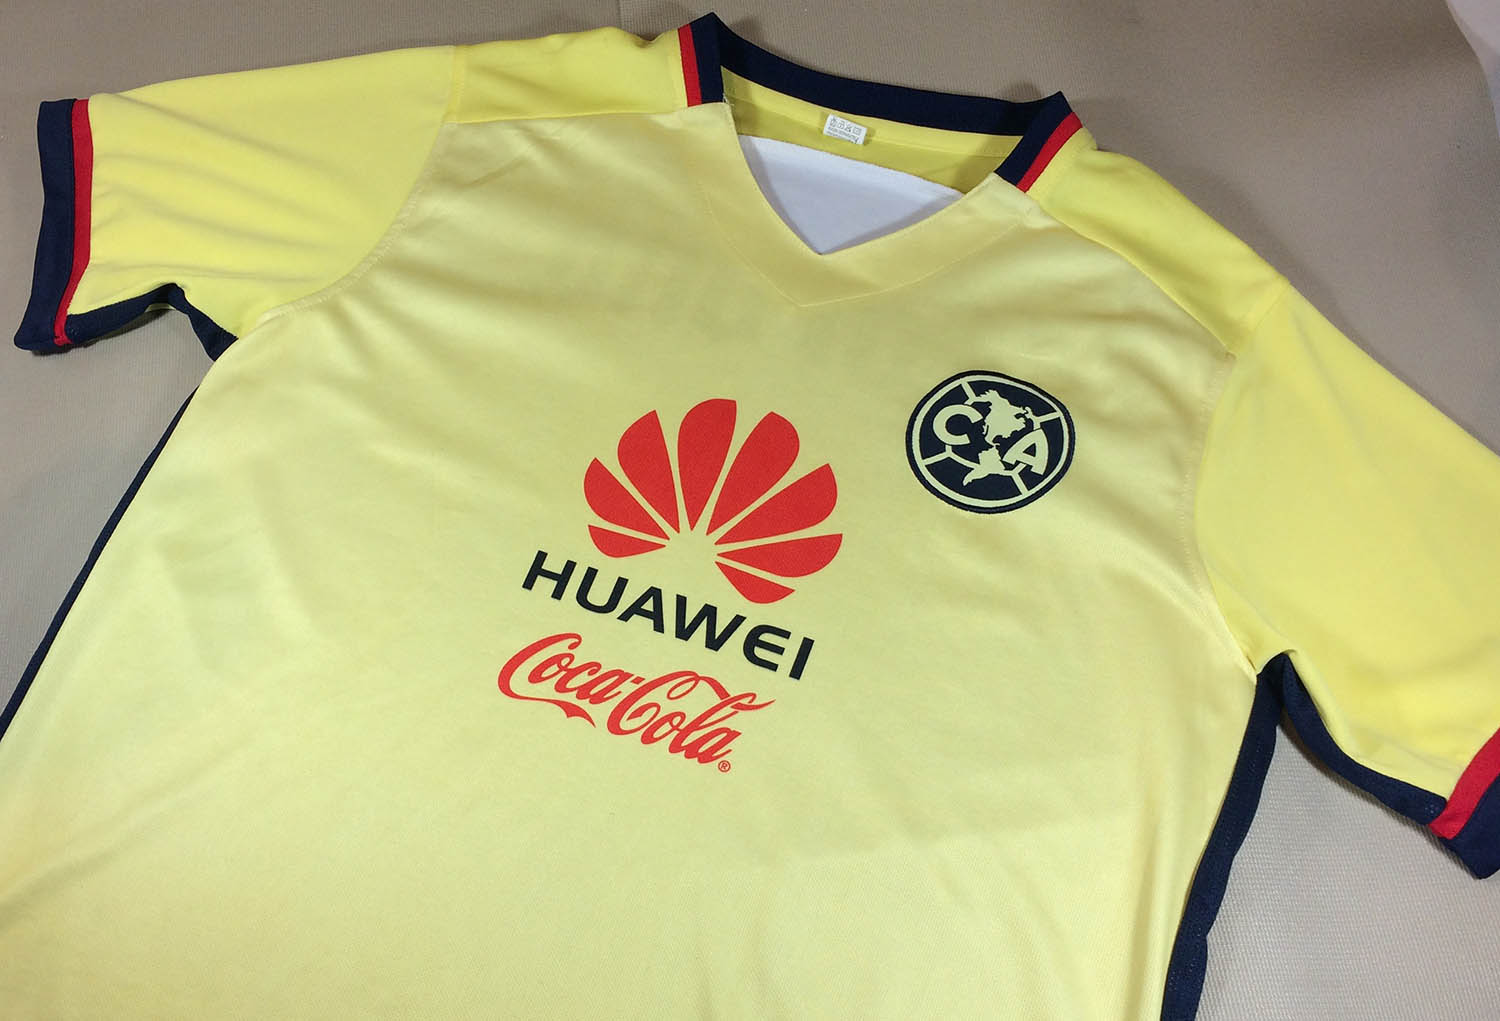 best service 88b70 193d6 Club America Huawei Yellow Jersey